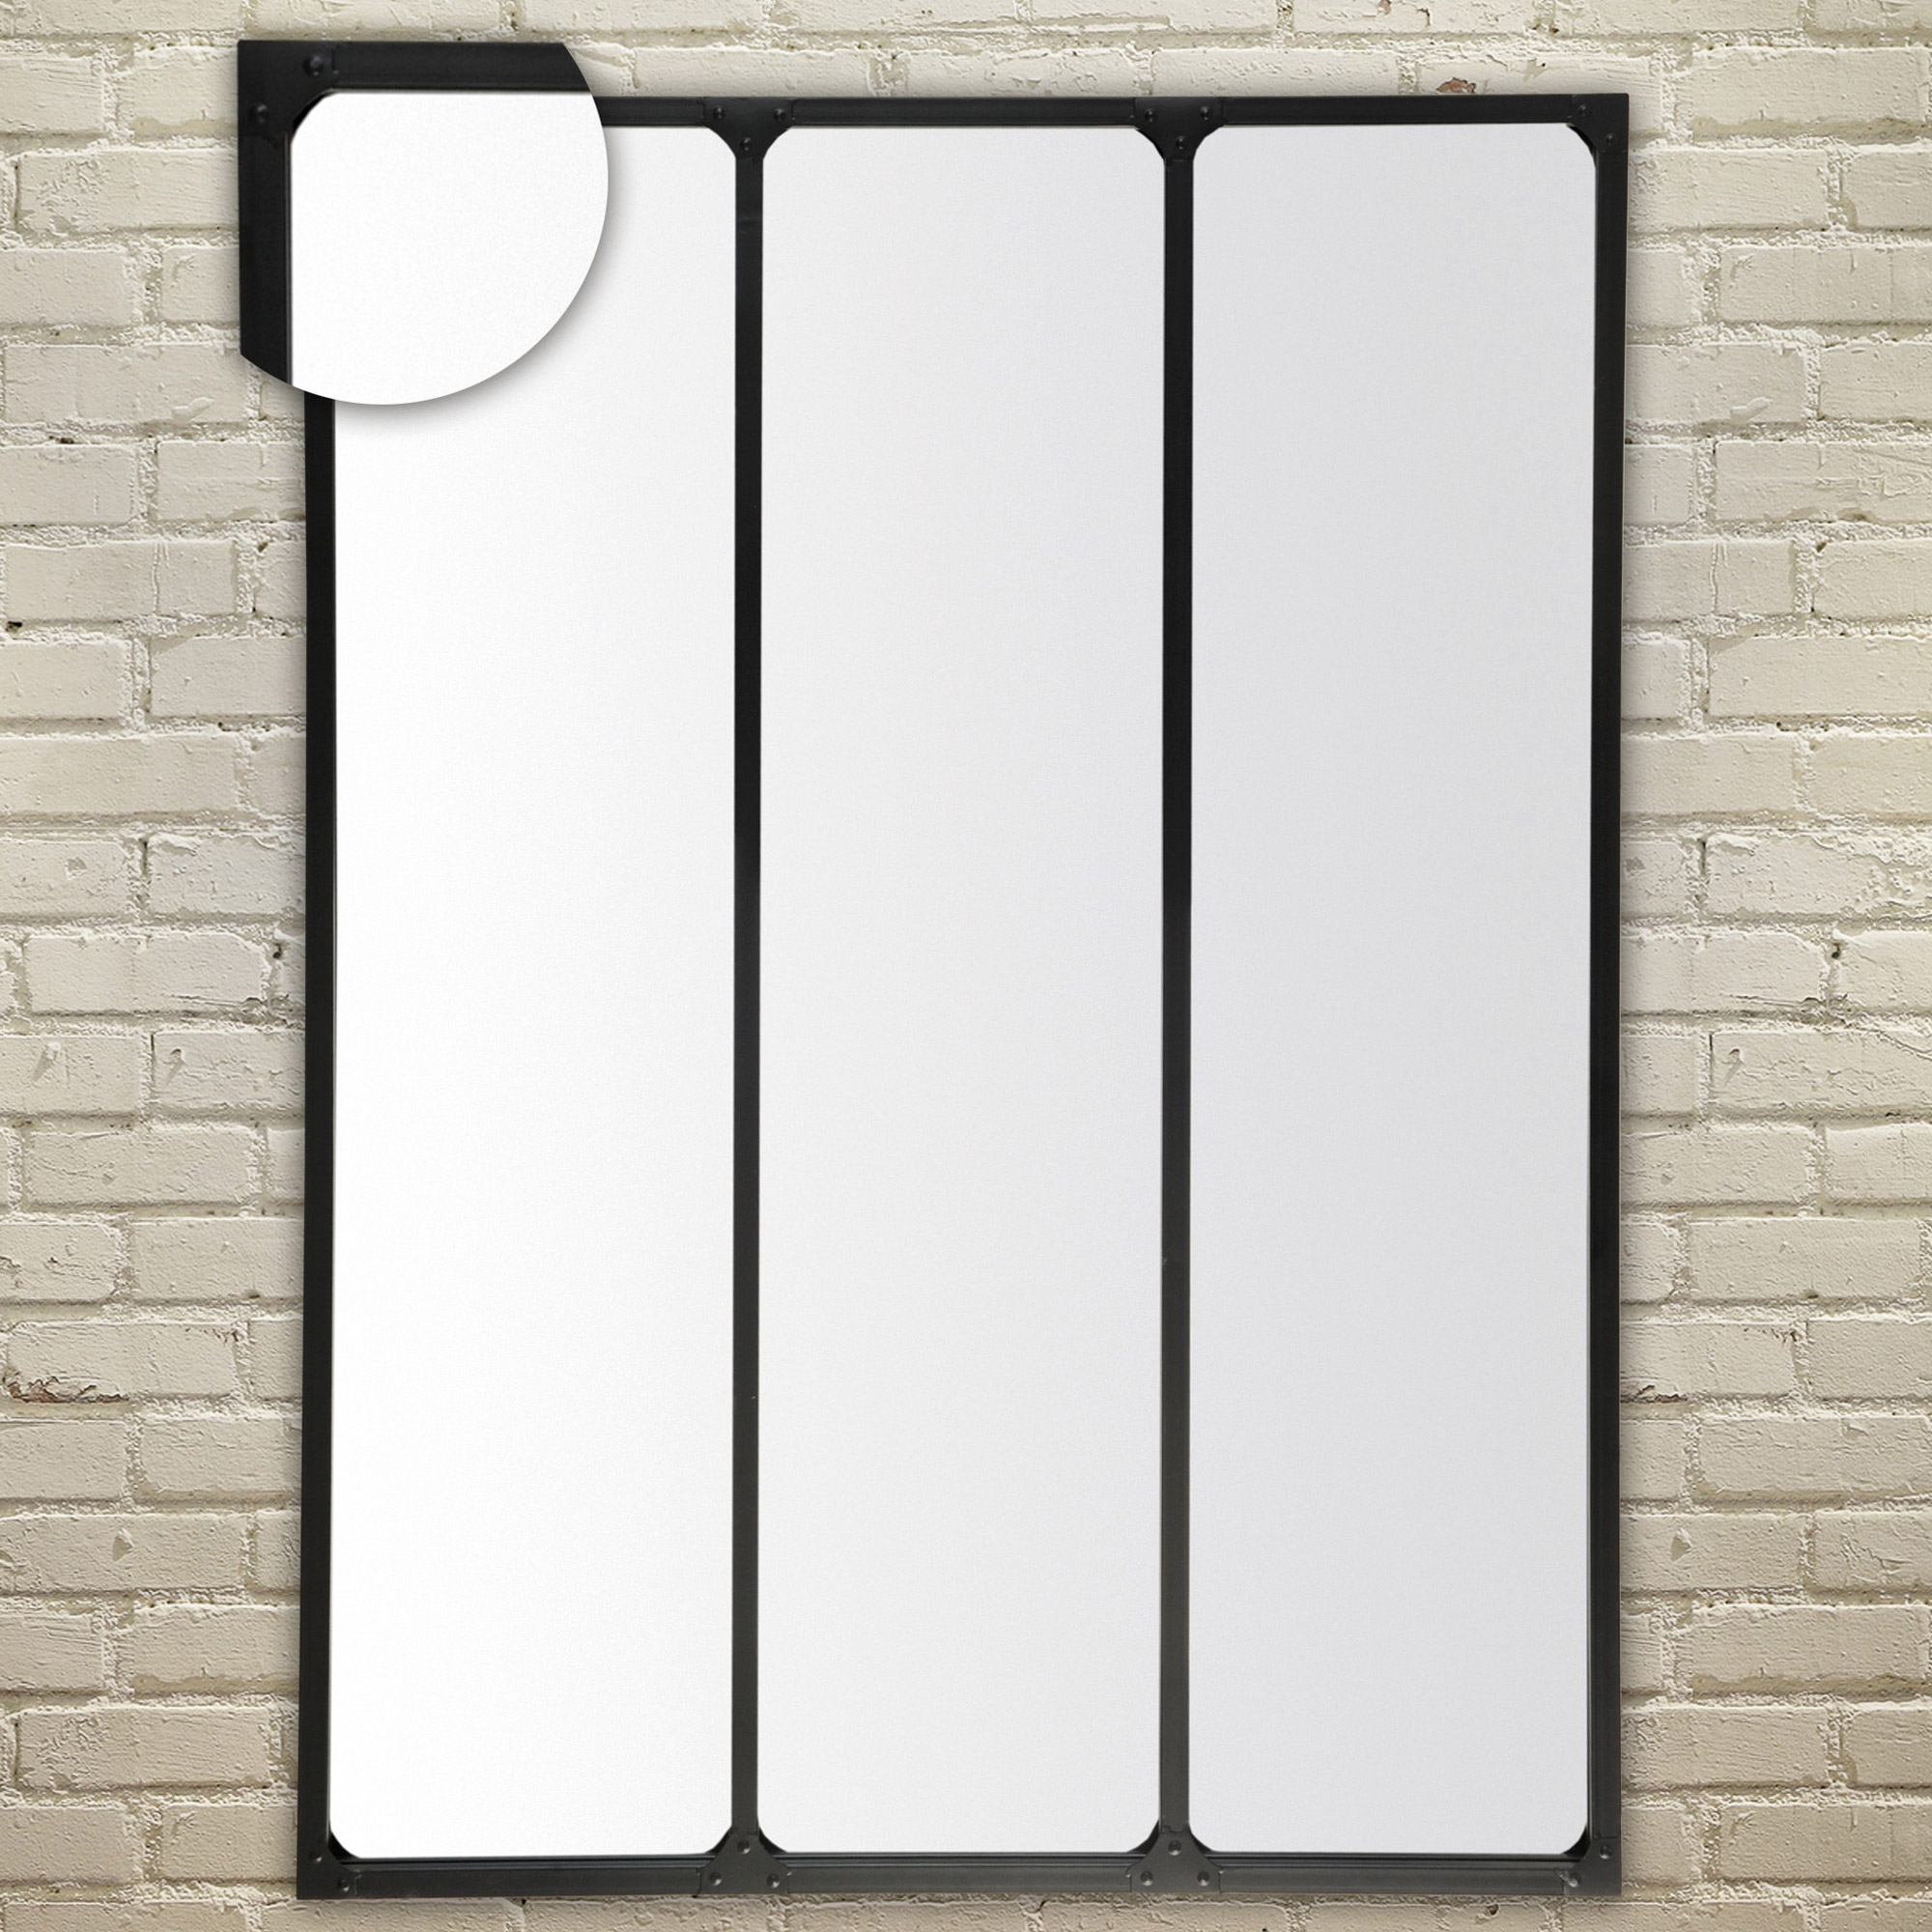 Emde miroir mural rectangulaire length 3 bandes en m tal for Miroir rectangulaire